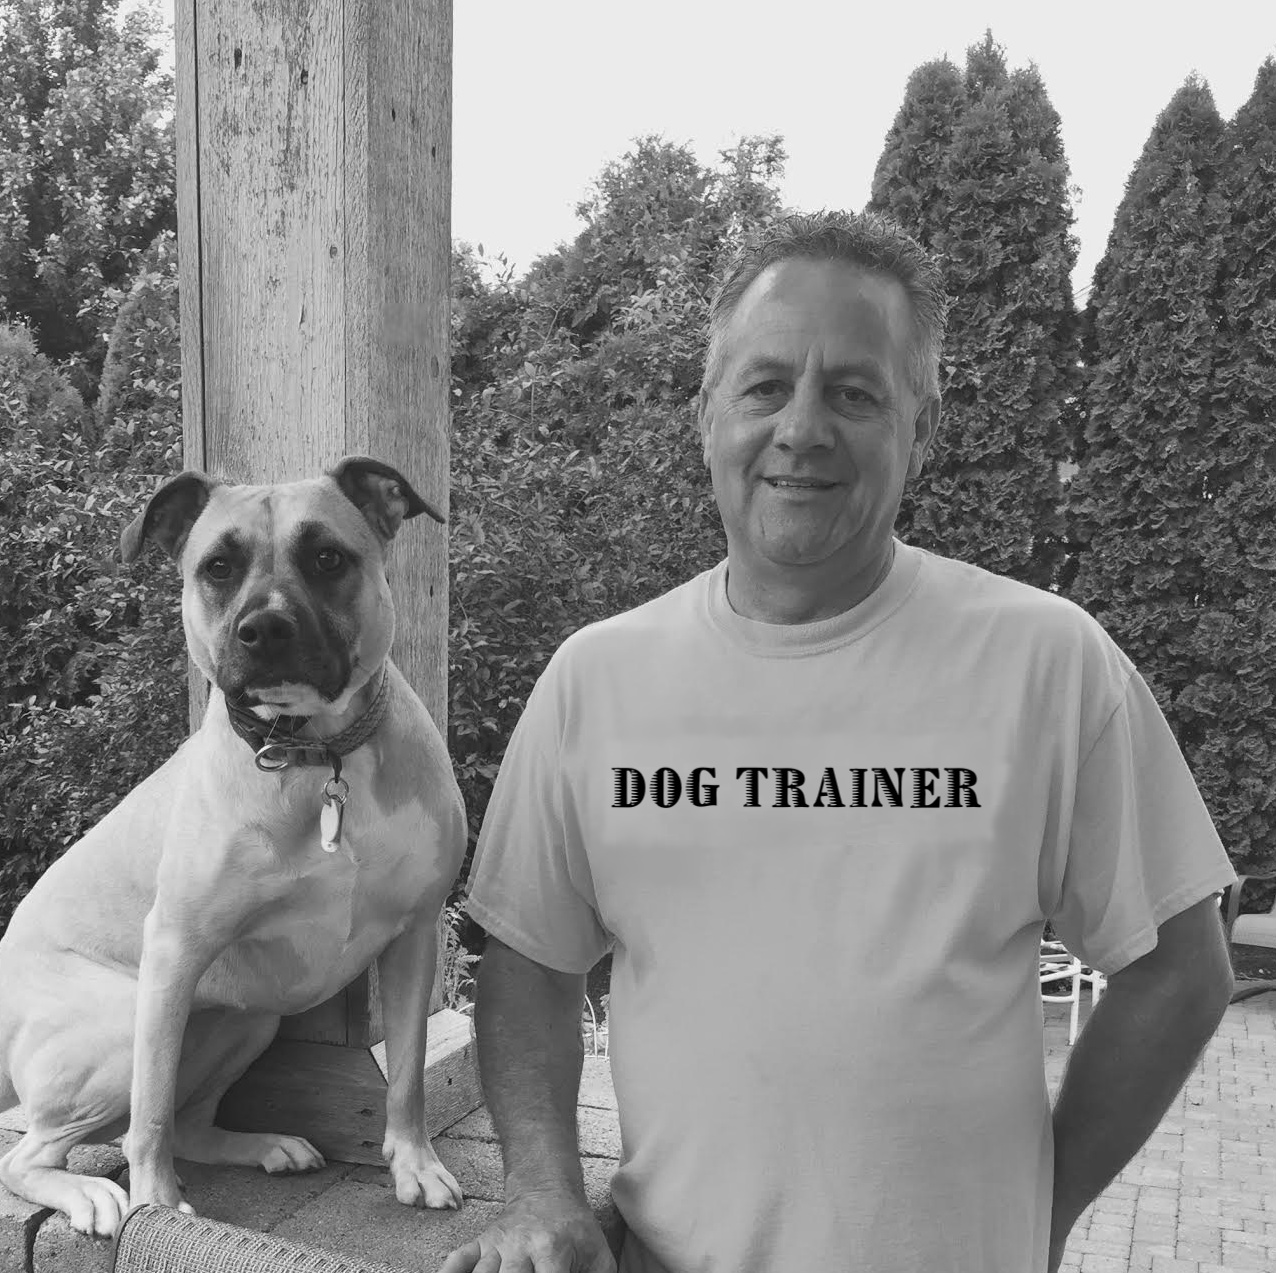 Dog Trainer Columbus Ohio image 1